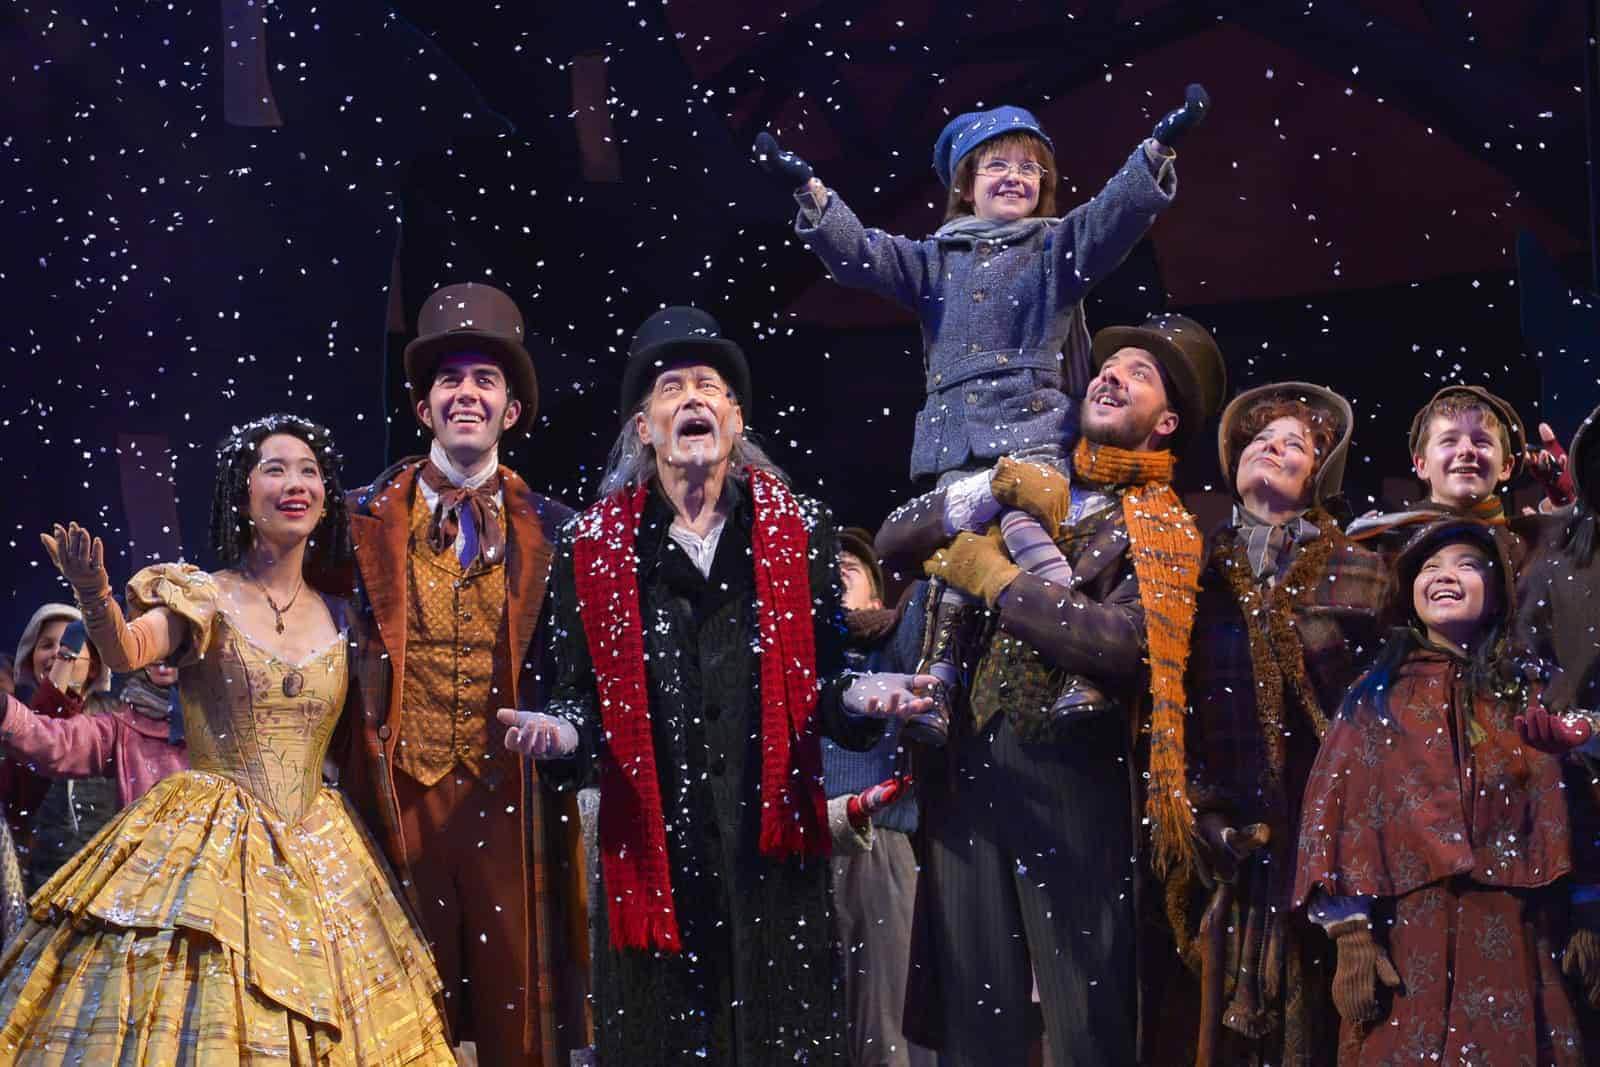 A Christmas Carol cheers and inspires at the ACT | Stark Insider